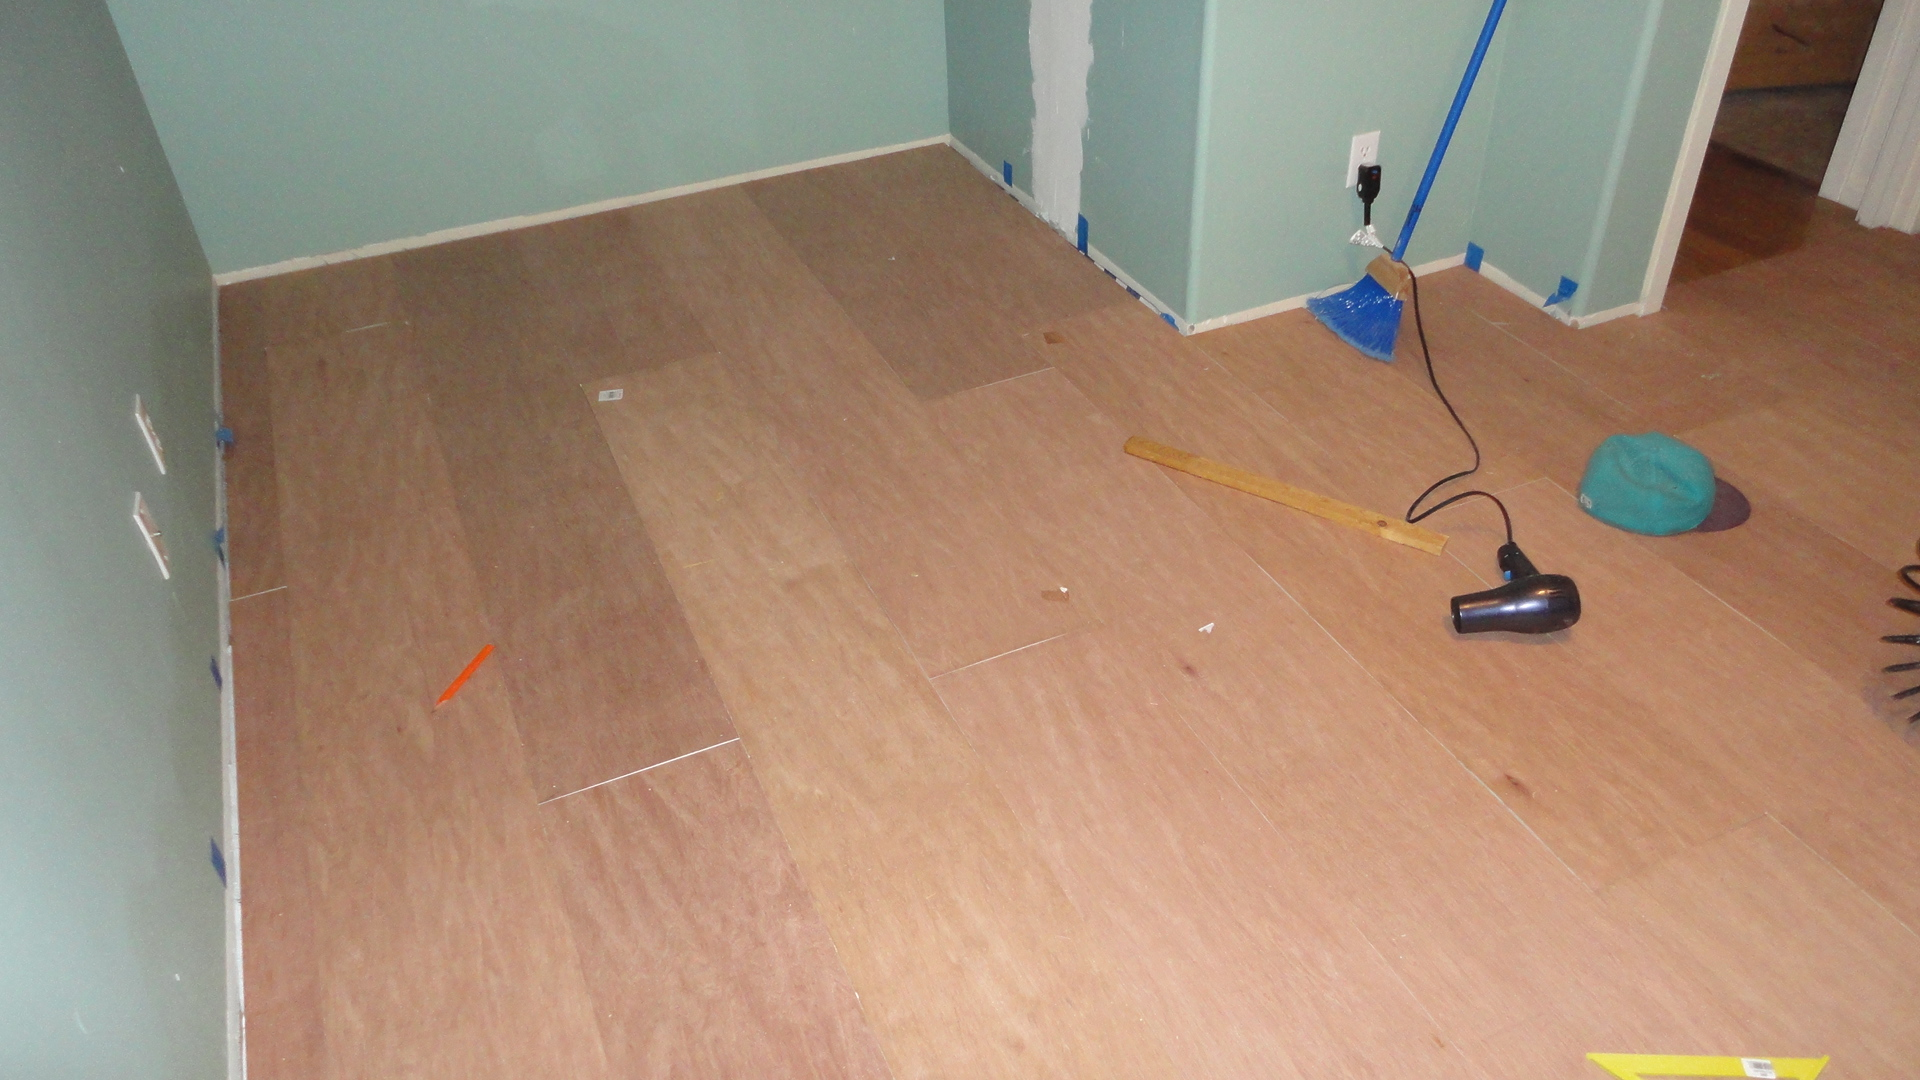 Terrazzo On Wood Subfloor: Transition time how to connect tile and hardwood floors.